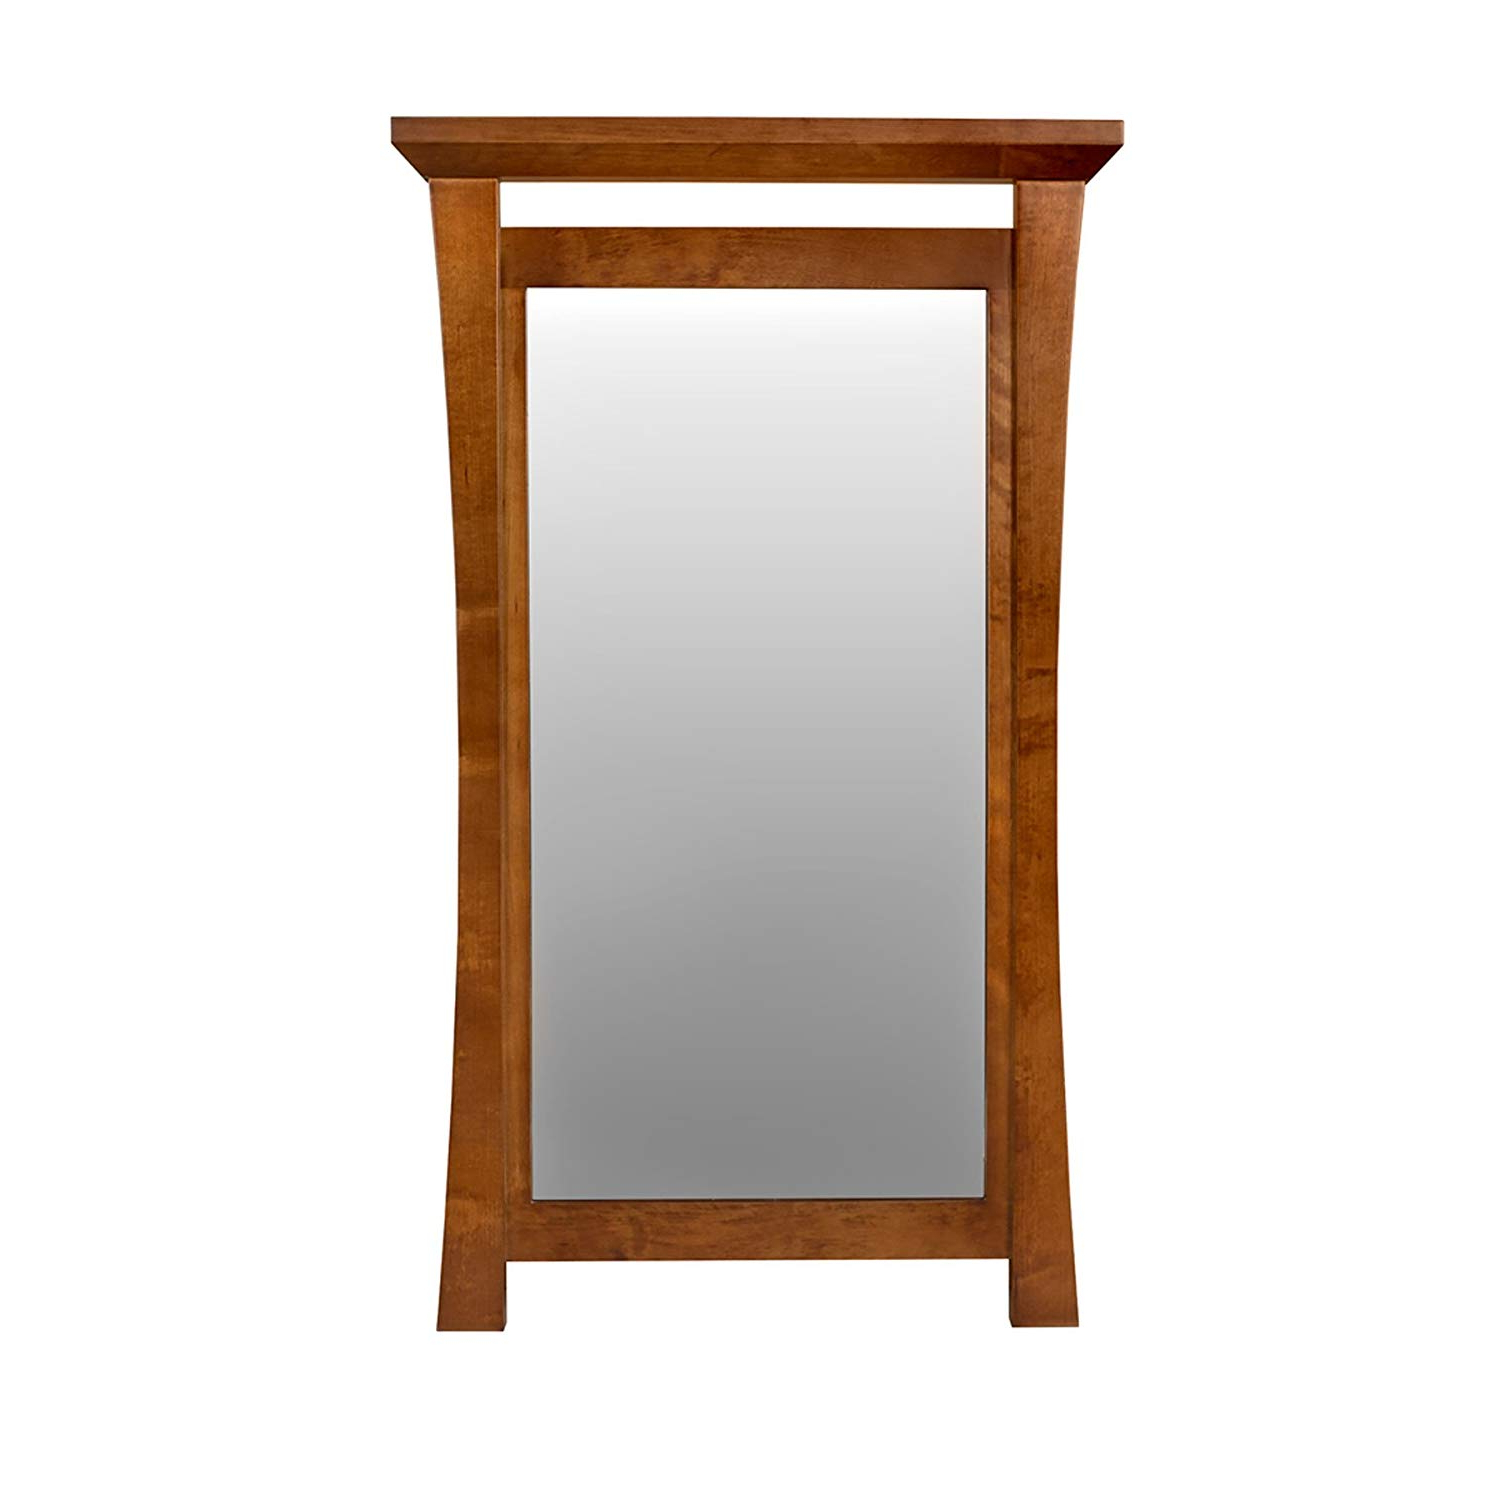 "Latest Cherry Wood Framed Wall Mirrors Pertaining To Amazon: Maykke Sachi 21"" W X 36"" H Wood Framed Rectangle Wall (Gallery 3 of 20)"